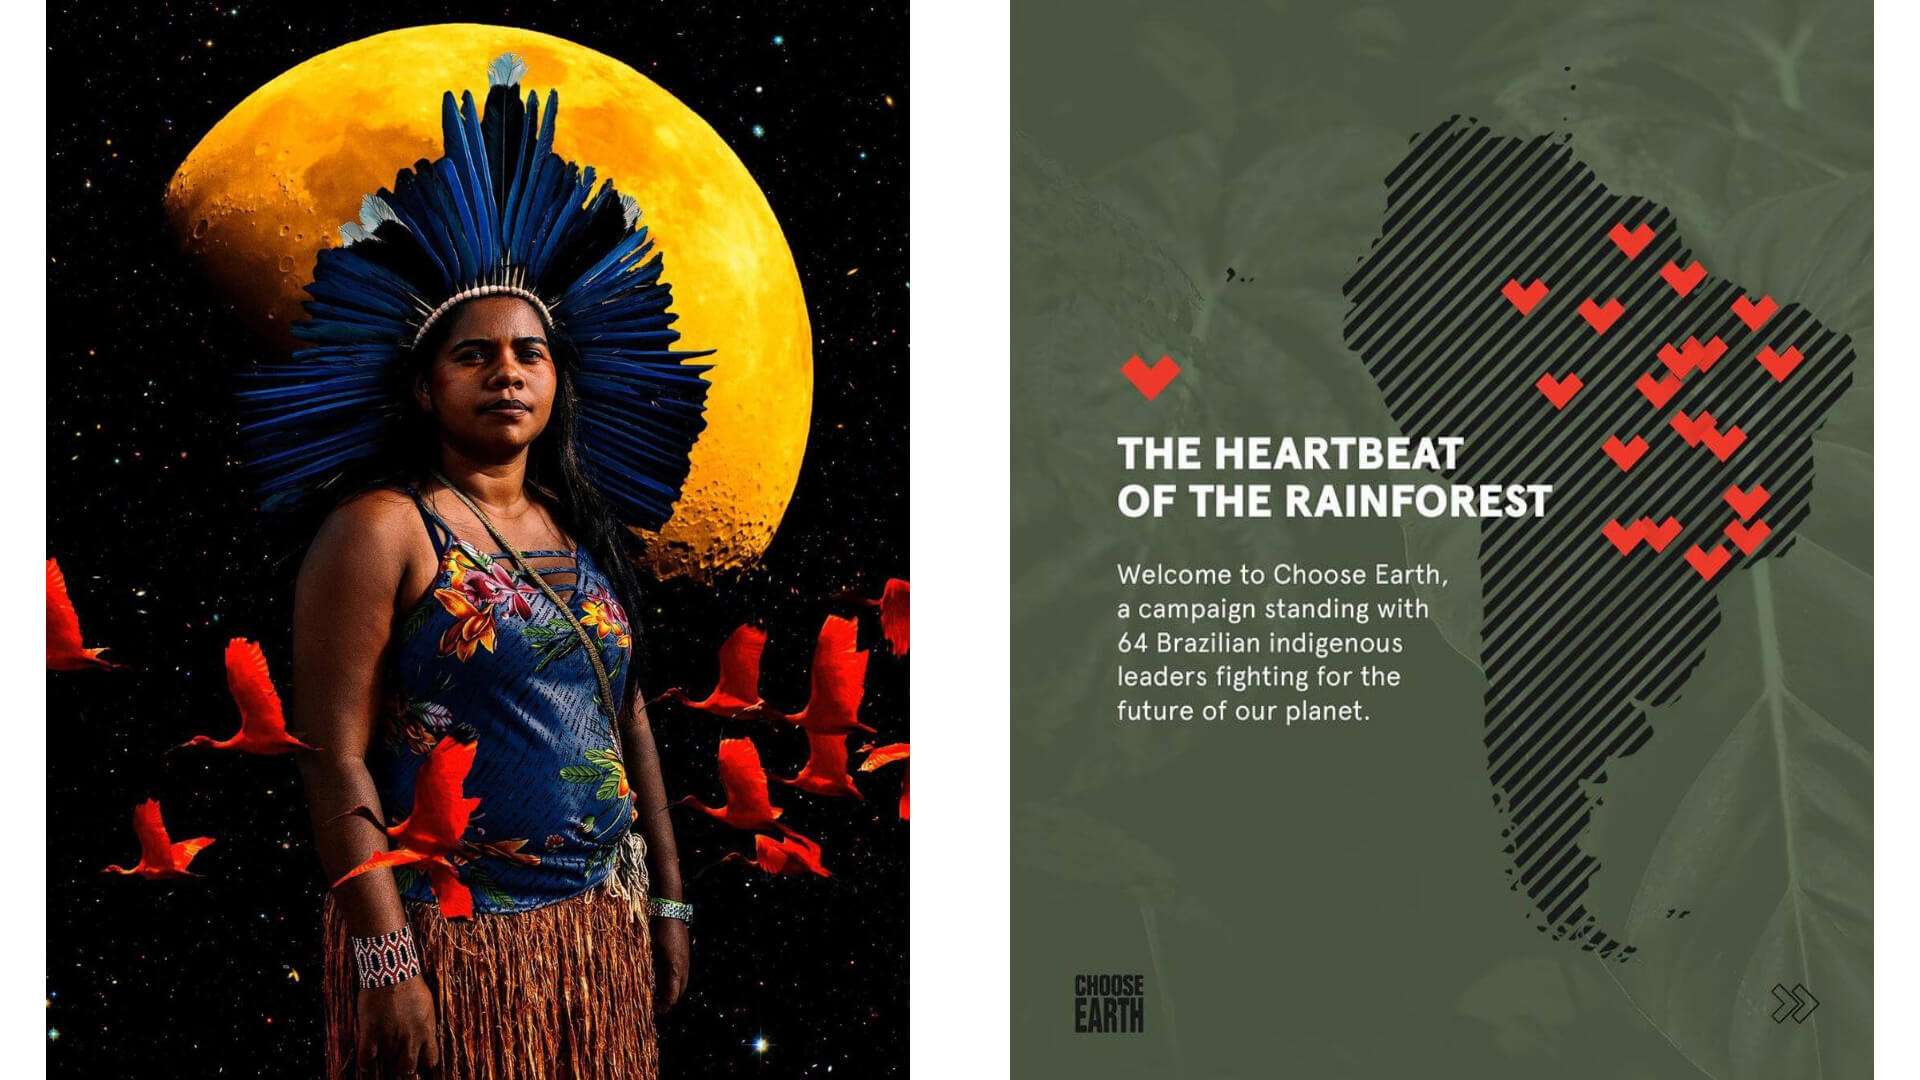 Female indigenous leader with traditional headwear and a CHOOSE EARTH poster of the communities supported